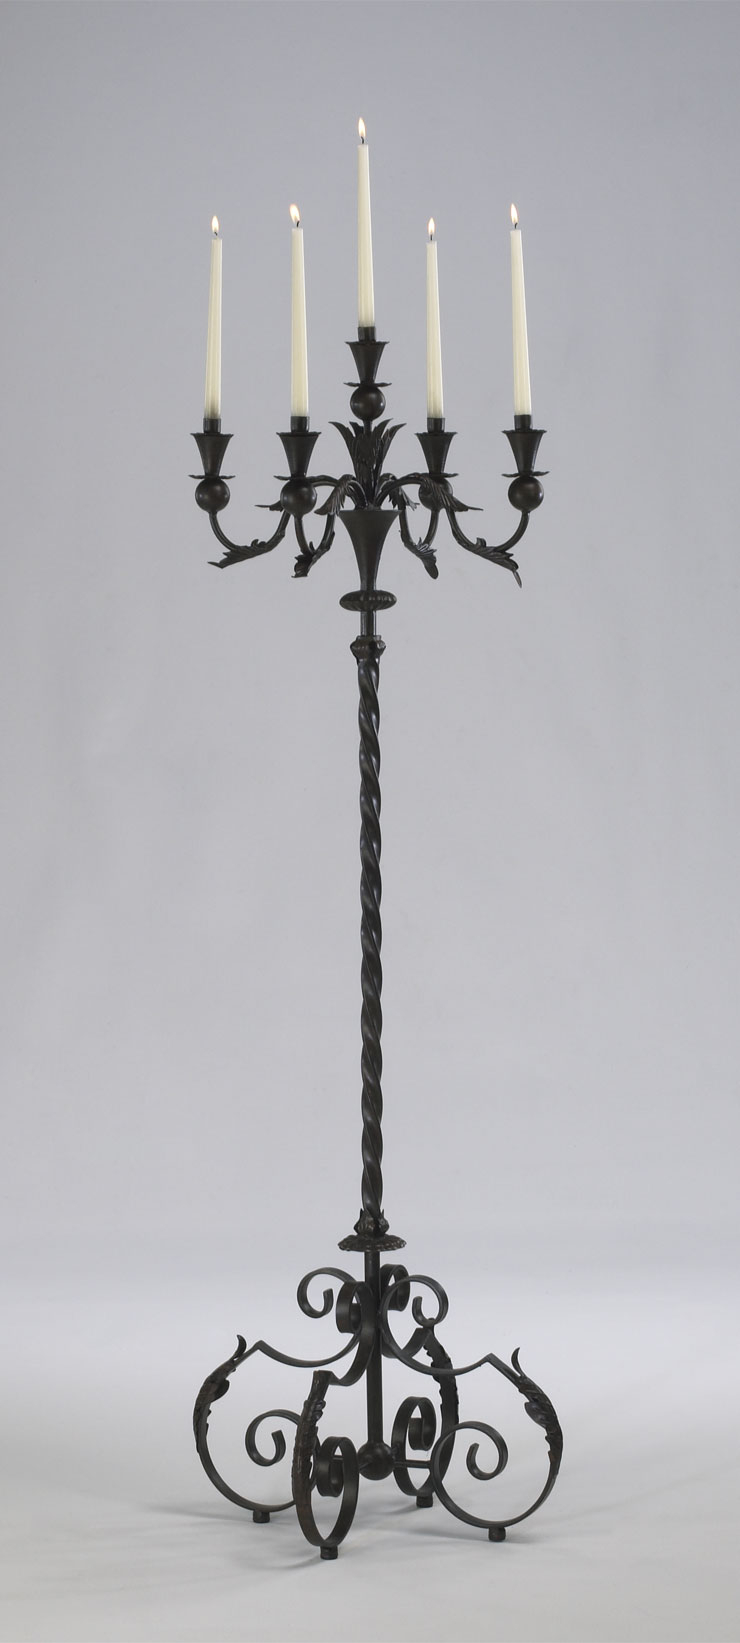 "Large Acanthus Multi 5 Taper Wrought Iron Floor Candelabra Tuscan French Gothic Candle Holder Stand Rustic 60"" Tall"